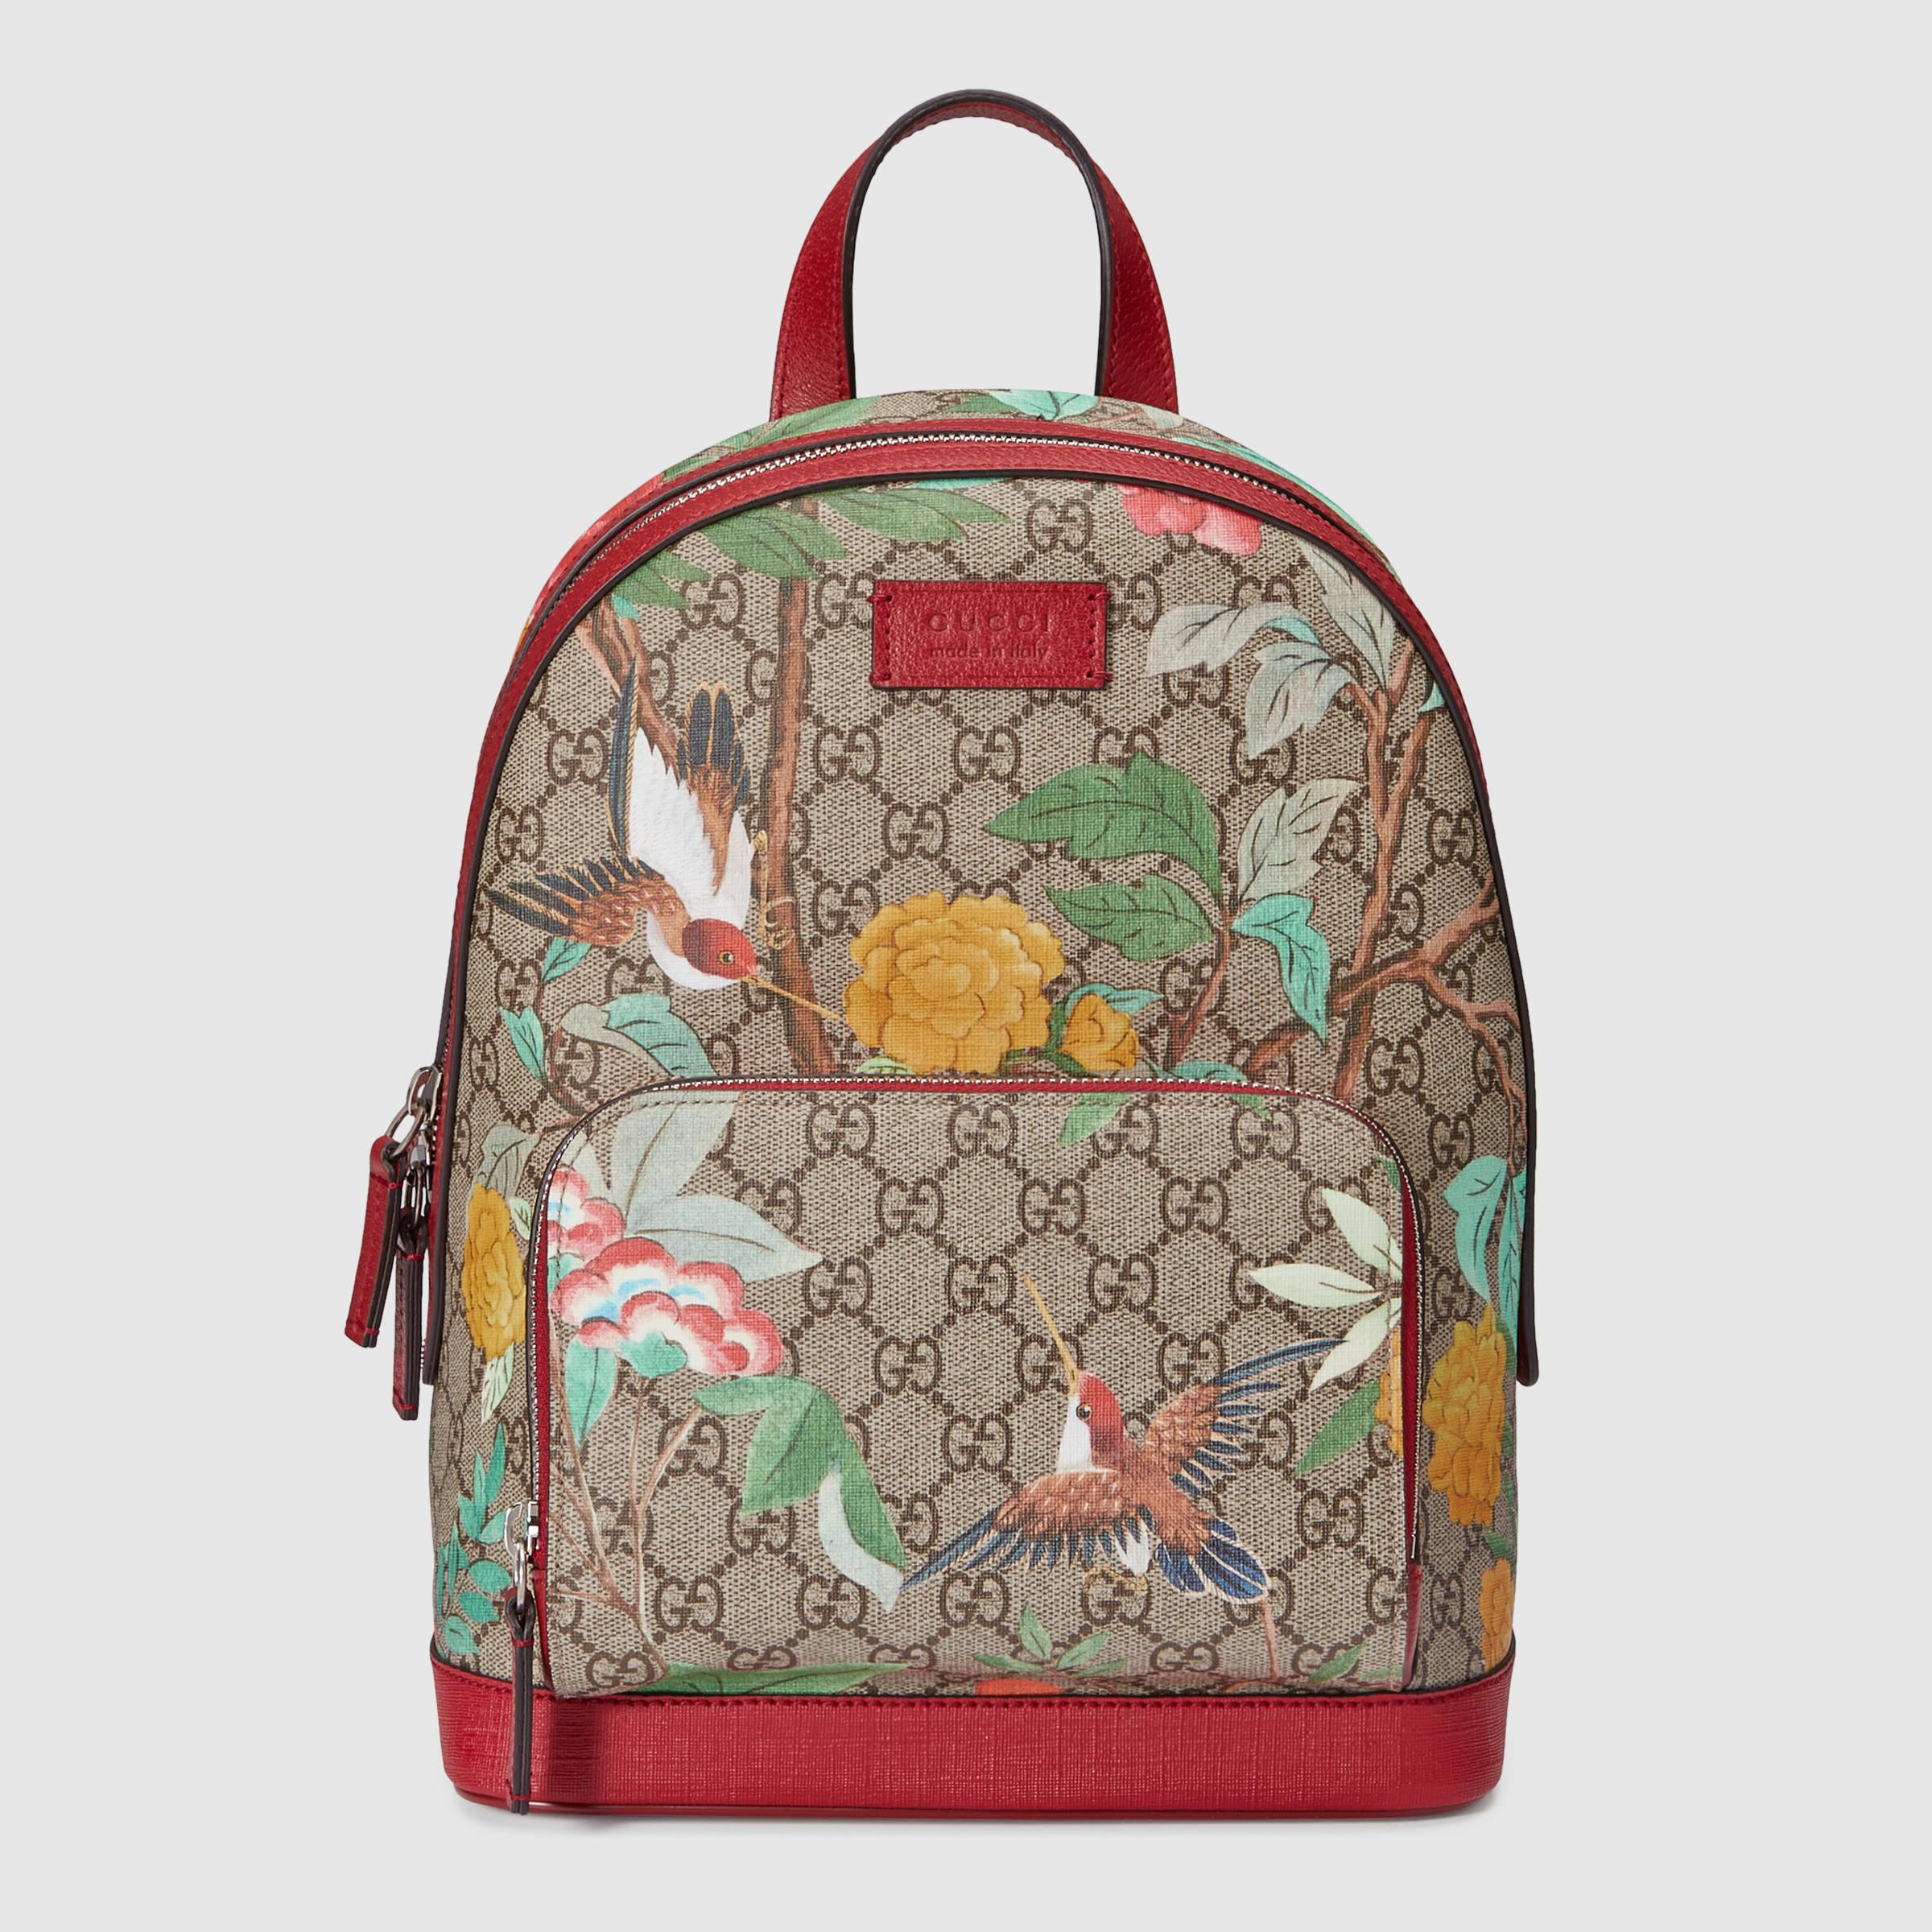 c4ca3a36f964 Gucci Tian GG Supreme Canvas & Leather Backpack - Lyst